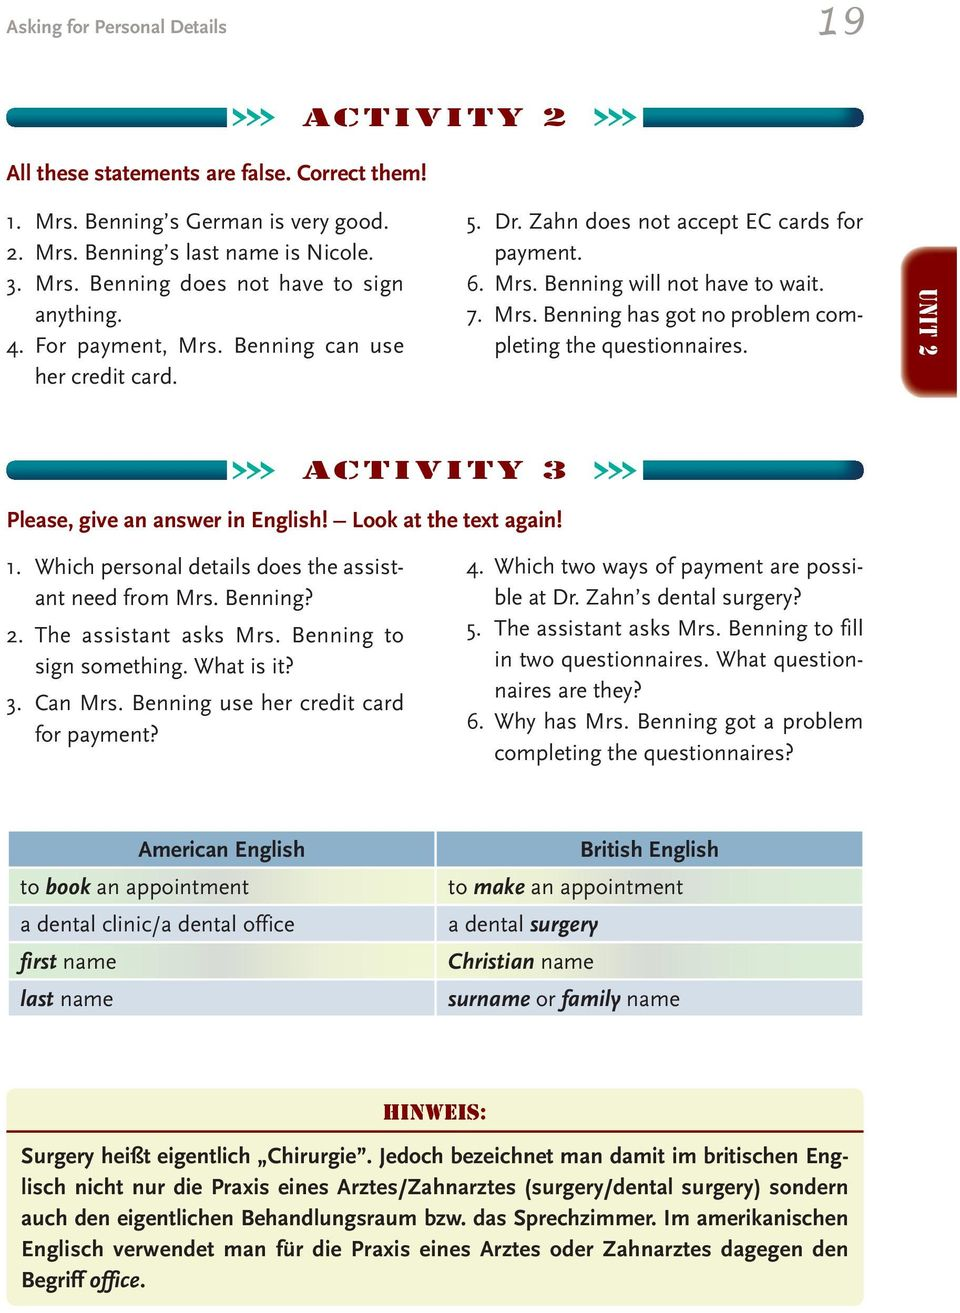 Unit 2 activity 3 Please, give an answer in English! Look at the text again! 1. Which personal details does the assistant need from? 2. The assistant asks to sign something. What is it? 3. Can use her credit card for payment?